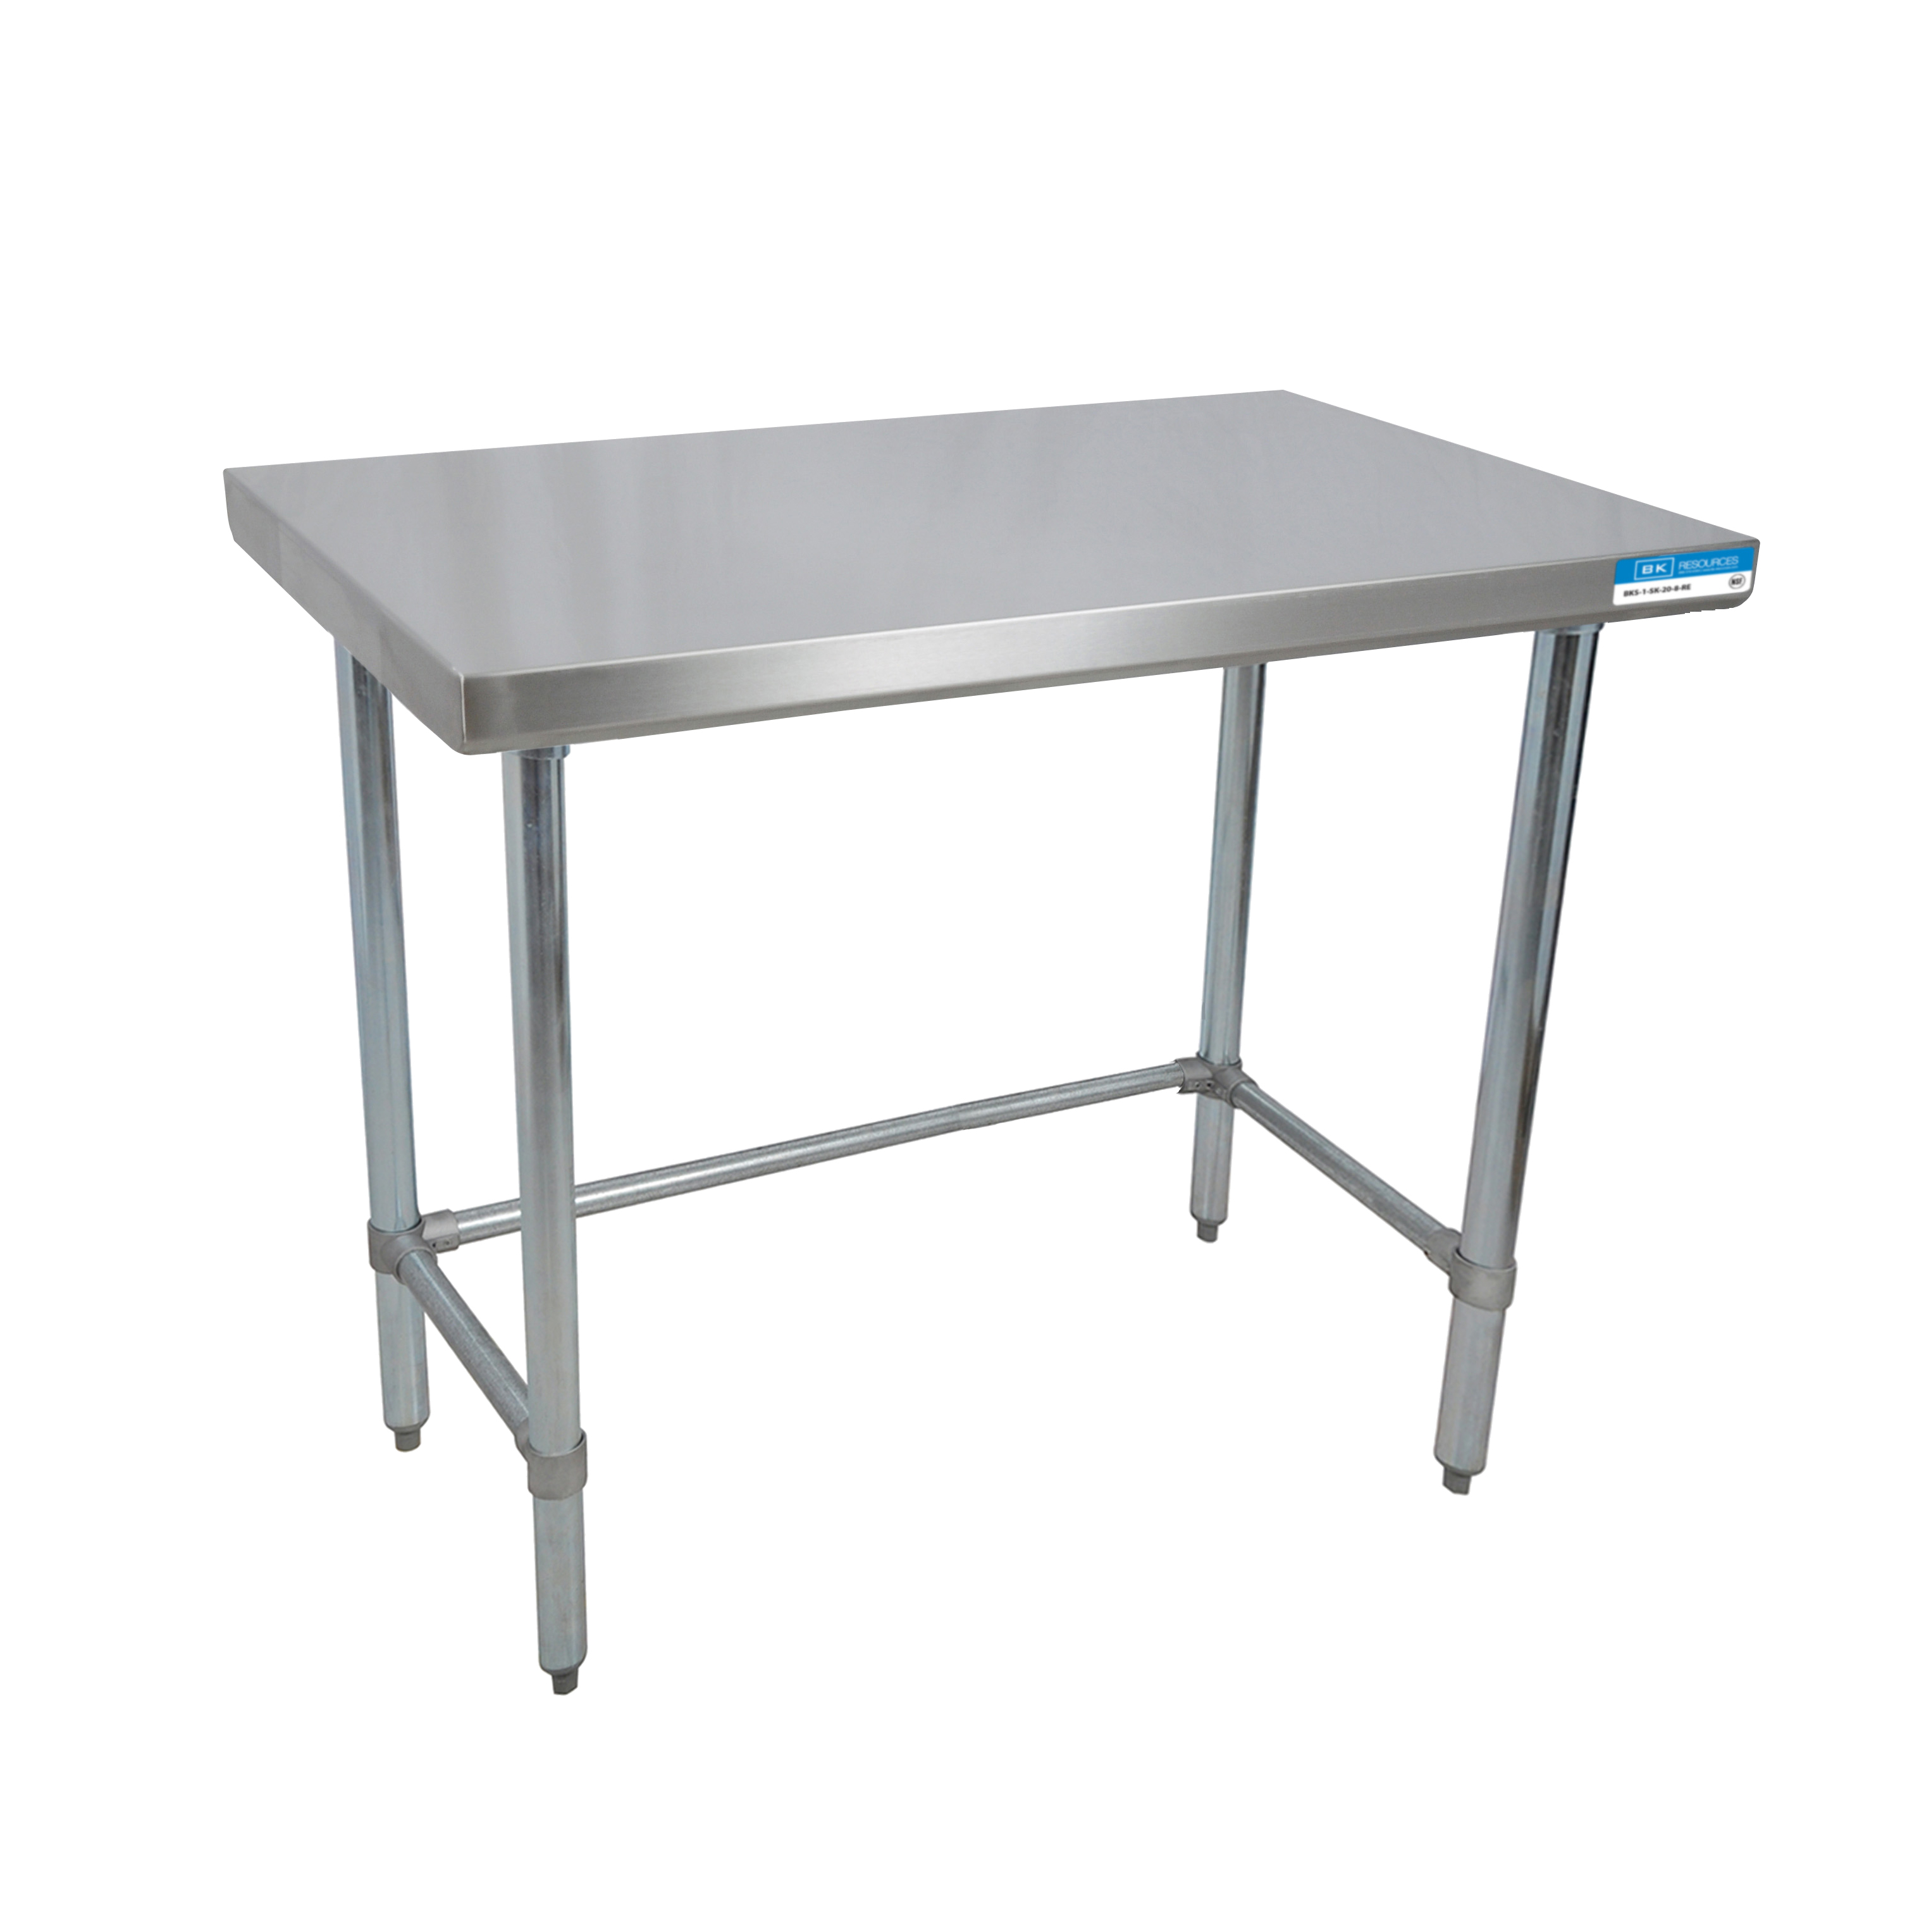 BK Resources CTTOB-6030 work table,  54